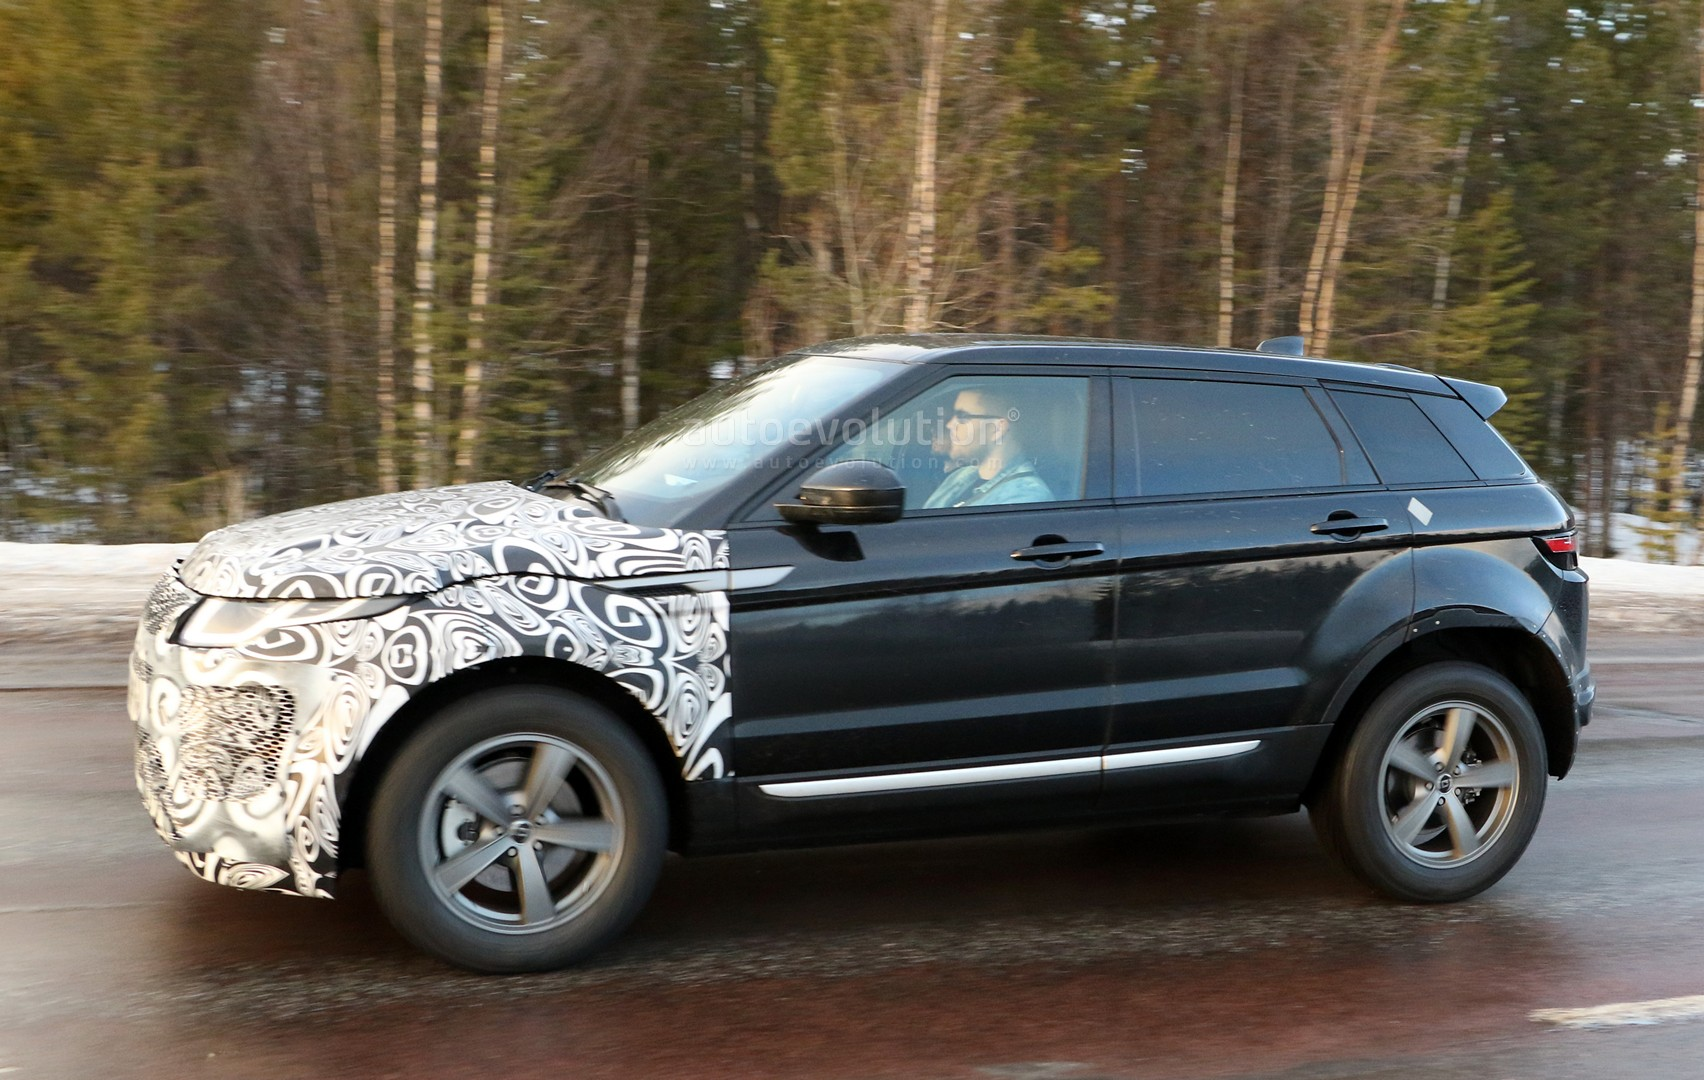 kong the new rover hong in tatler discovery life has land cropped arrived landrover